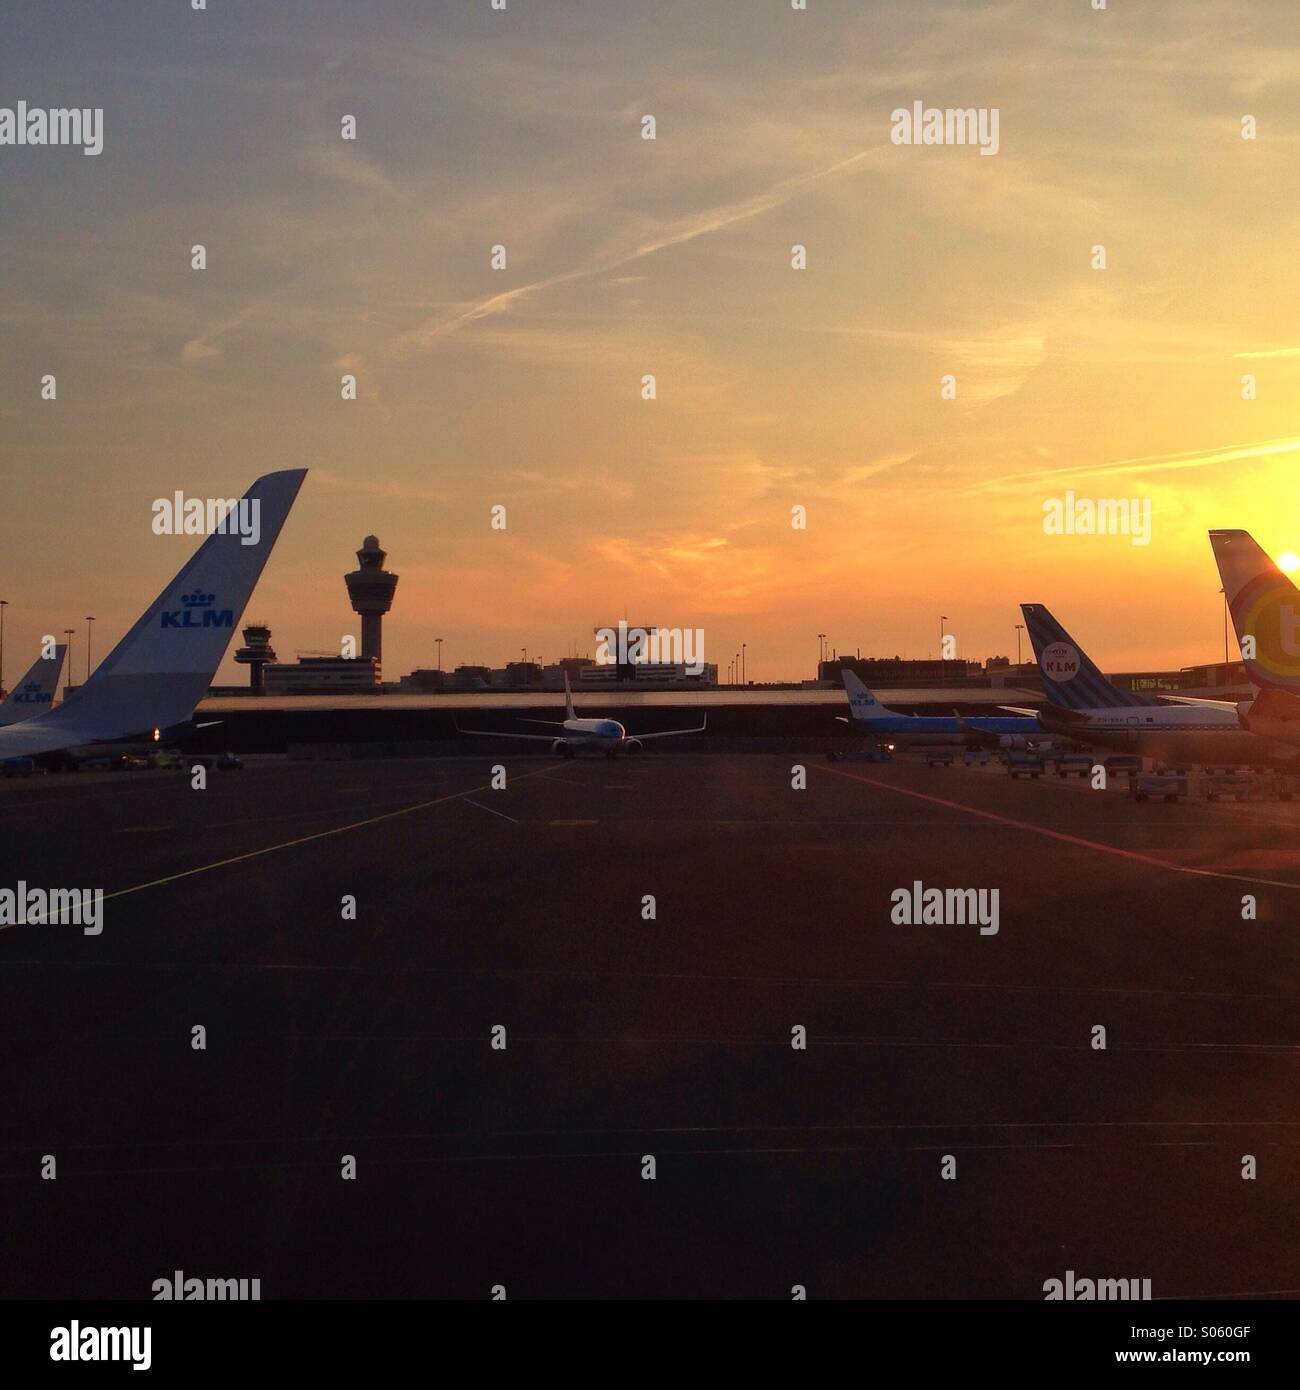 Airplanes in Schiphol Airport, Amsterdam, Holland - Stock Image